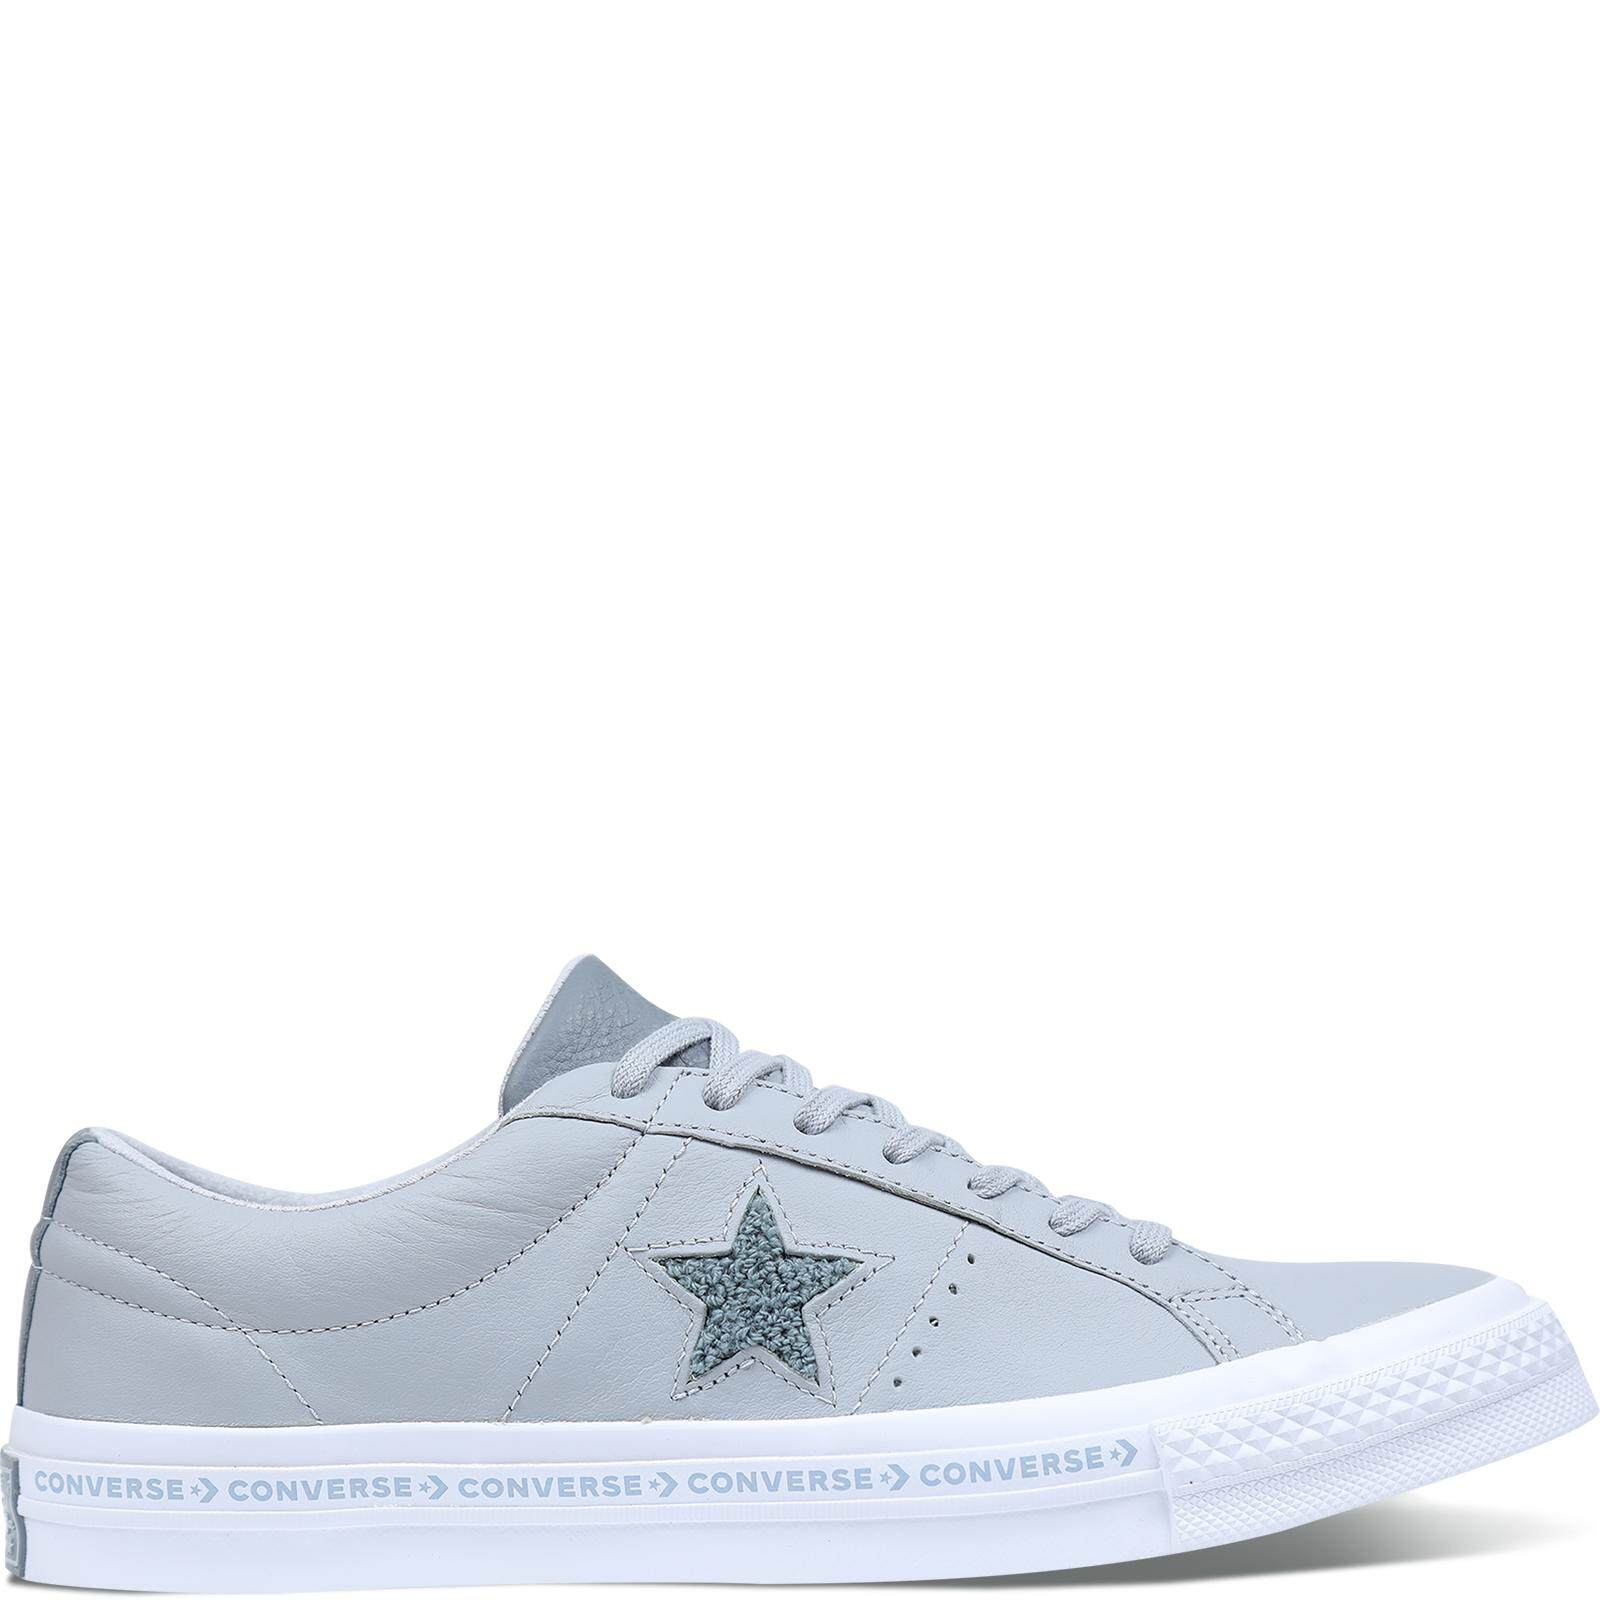 are converse good walking shoes